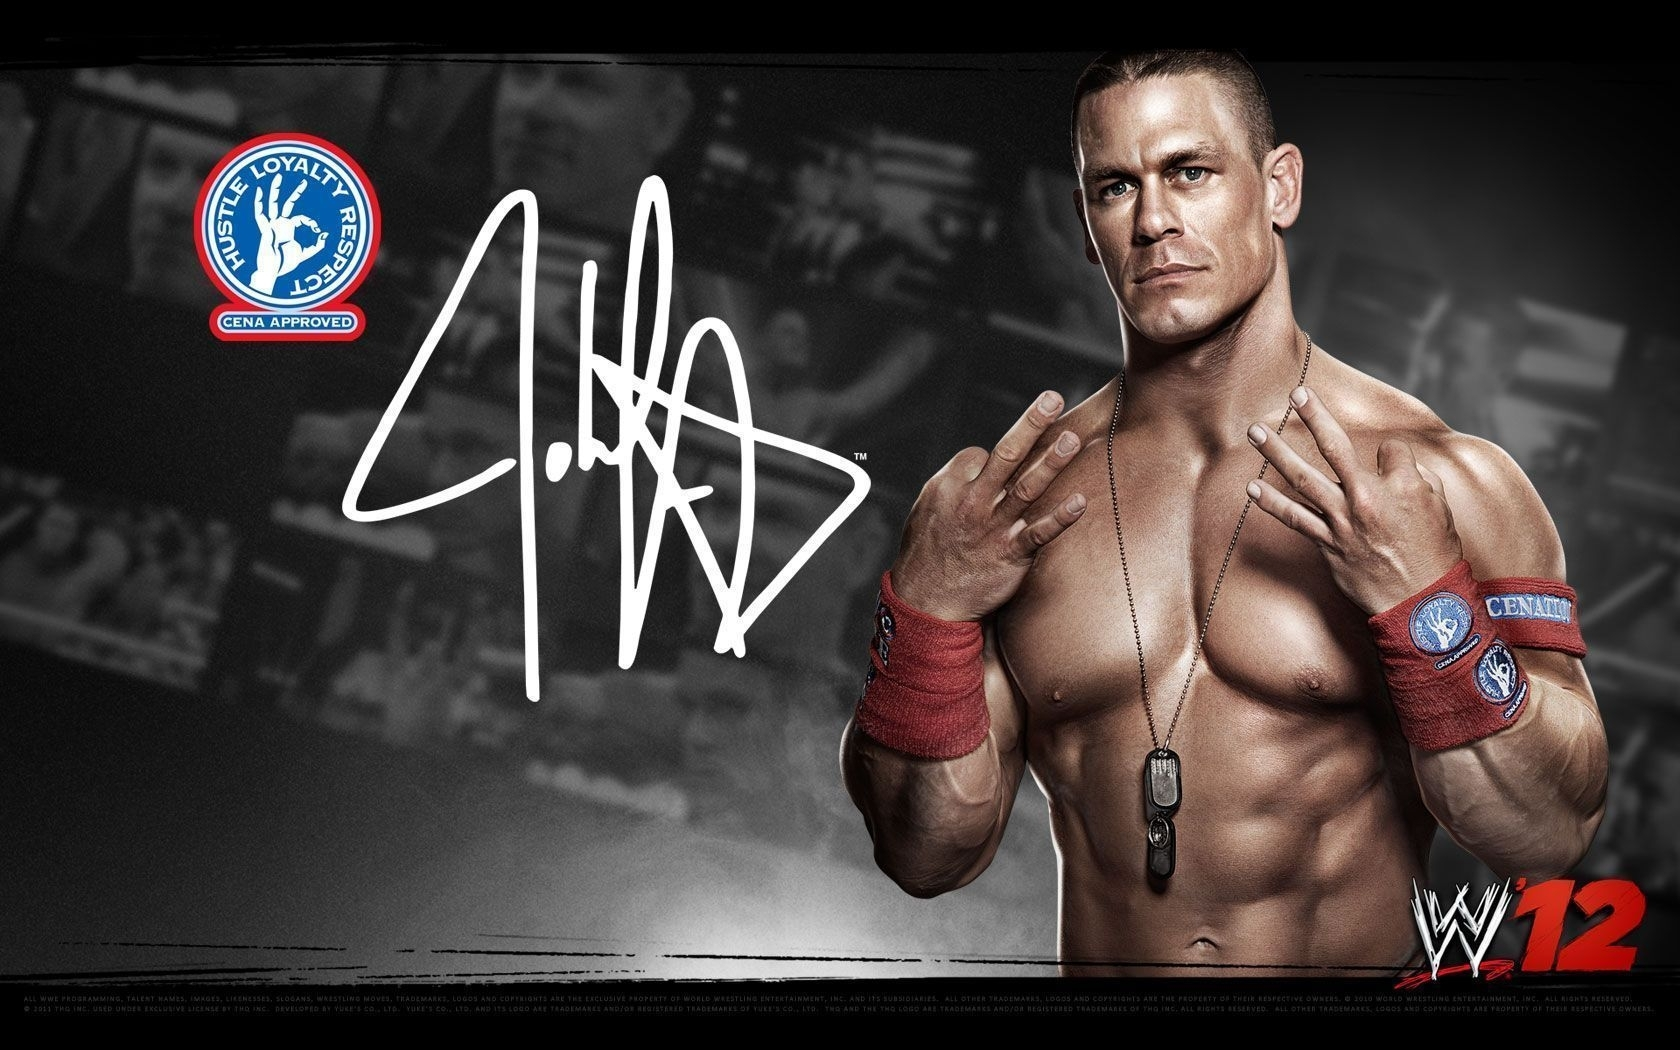 wwe images wwe 13-john cena wallpaper and background photos